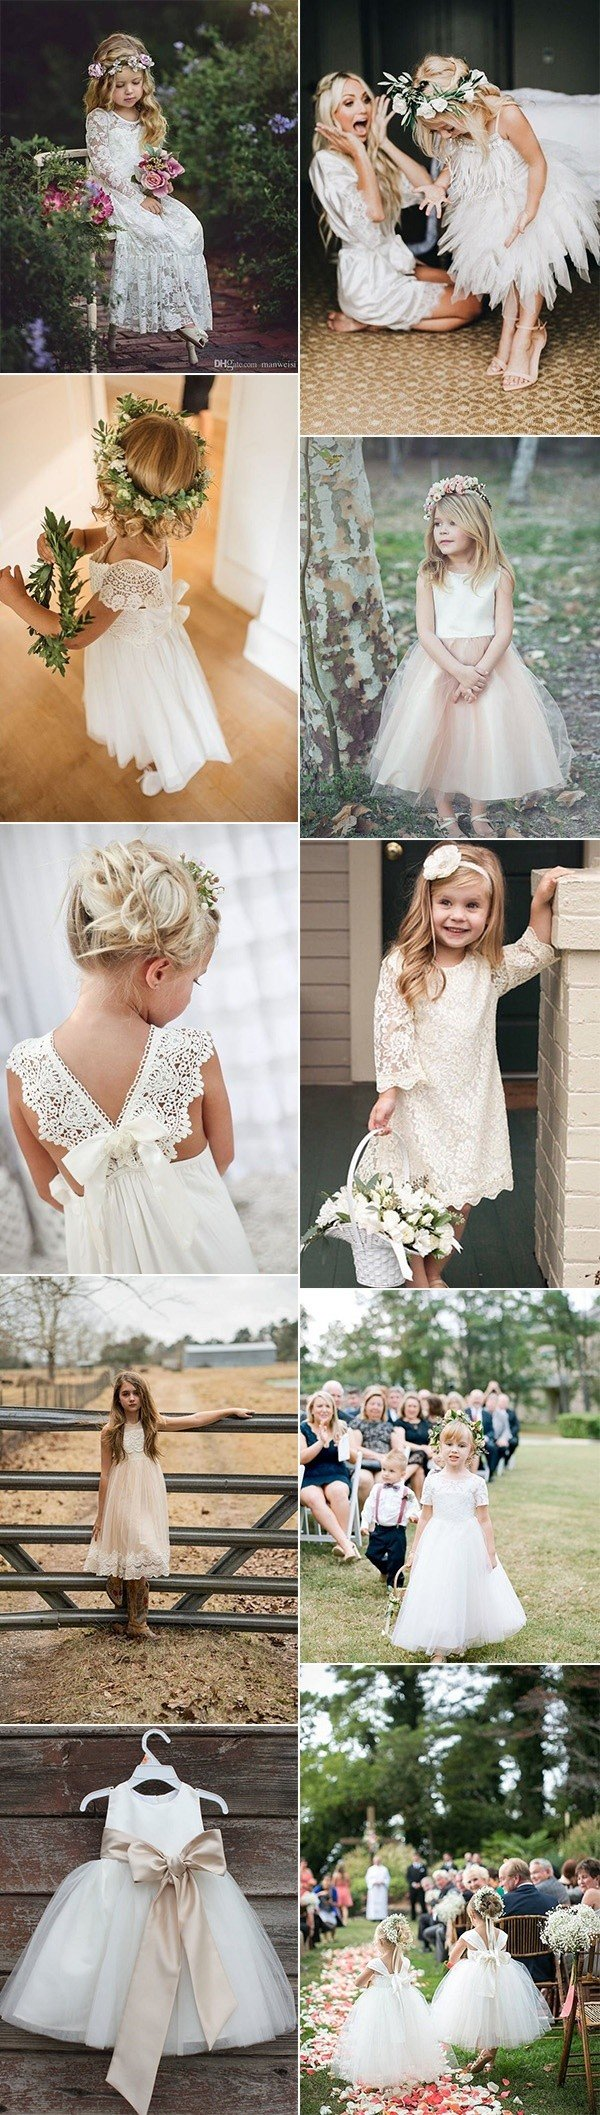 trending cutest flower girl dresses